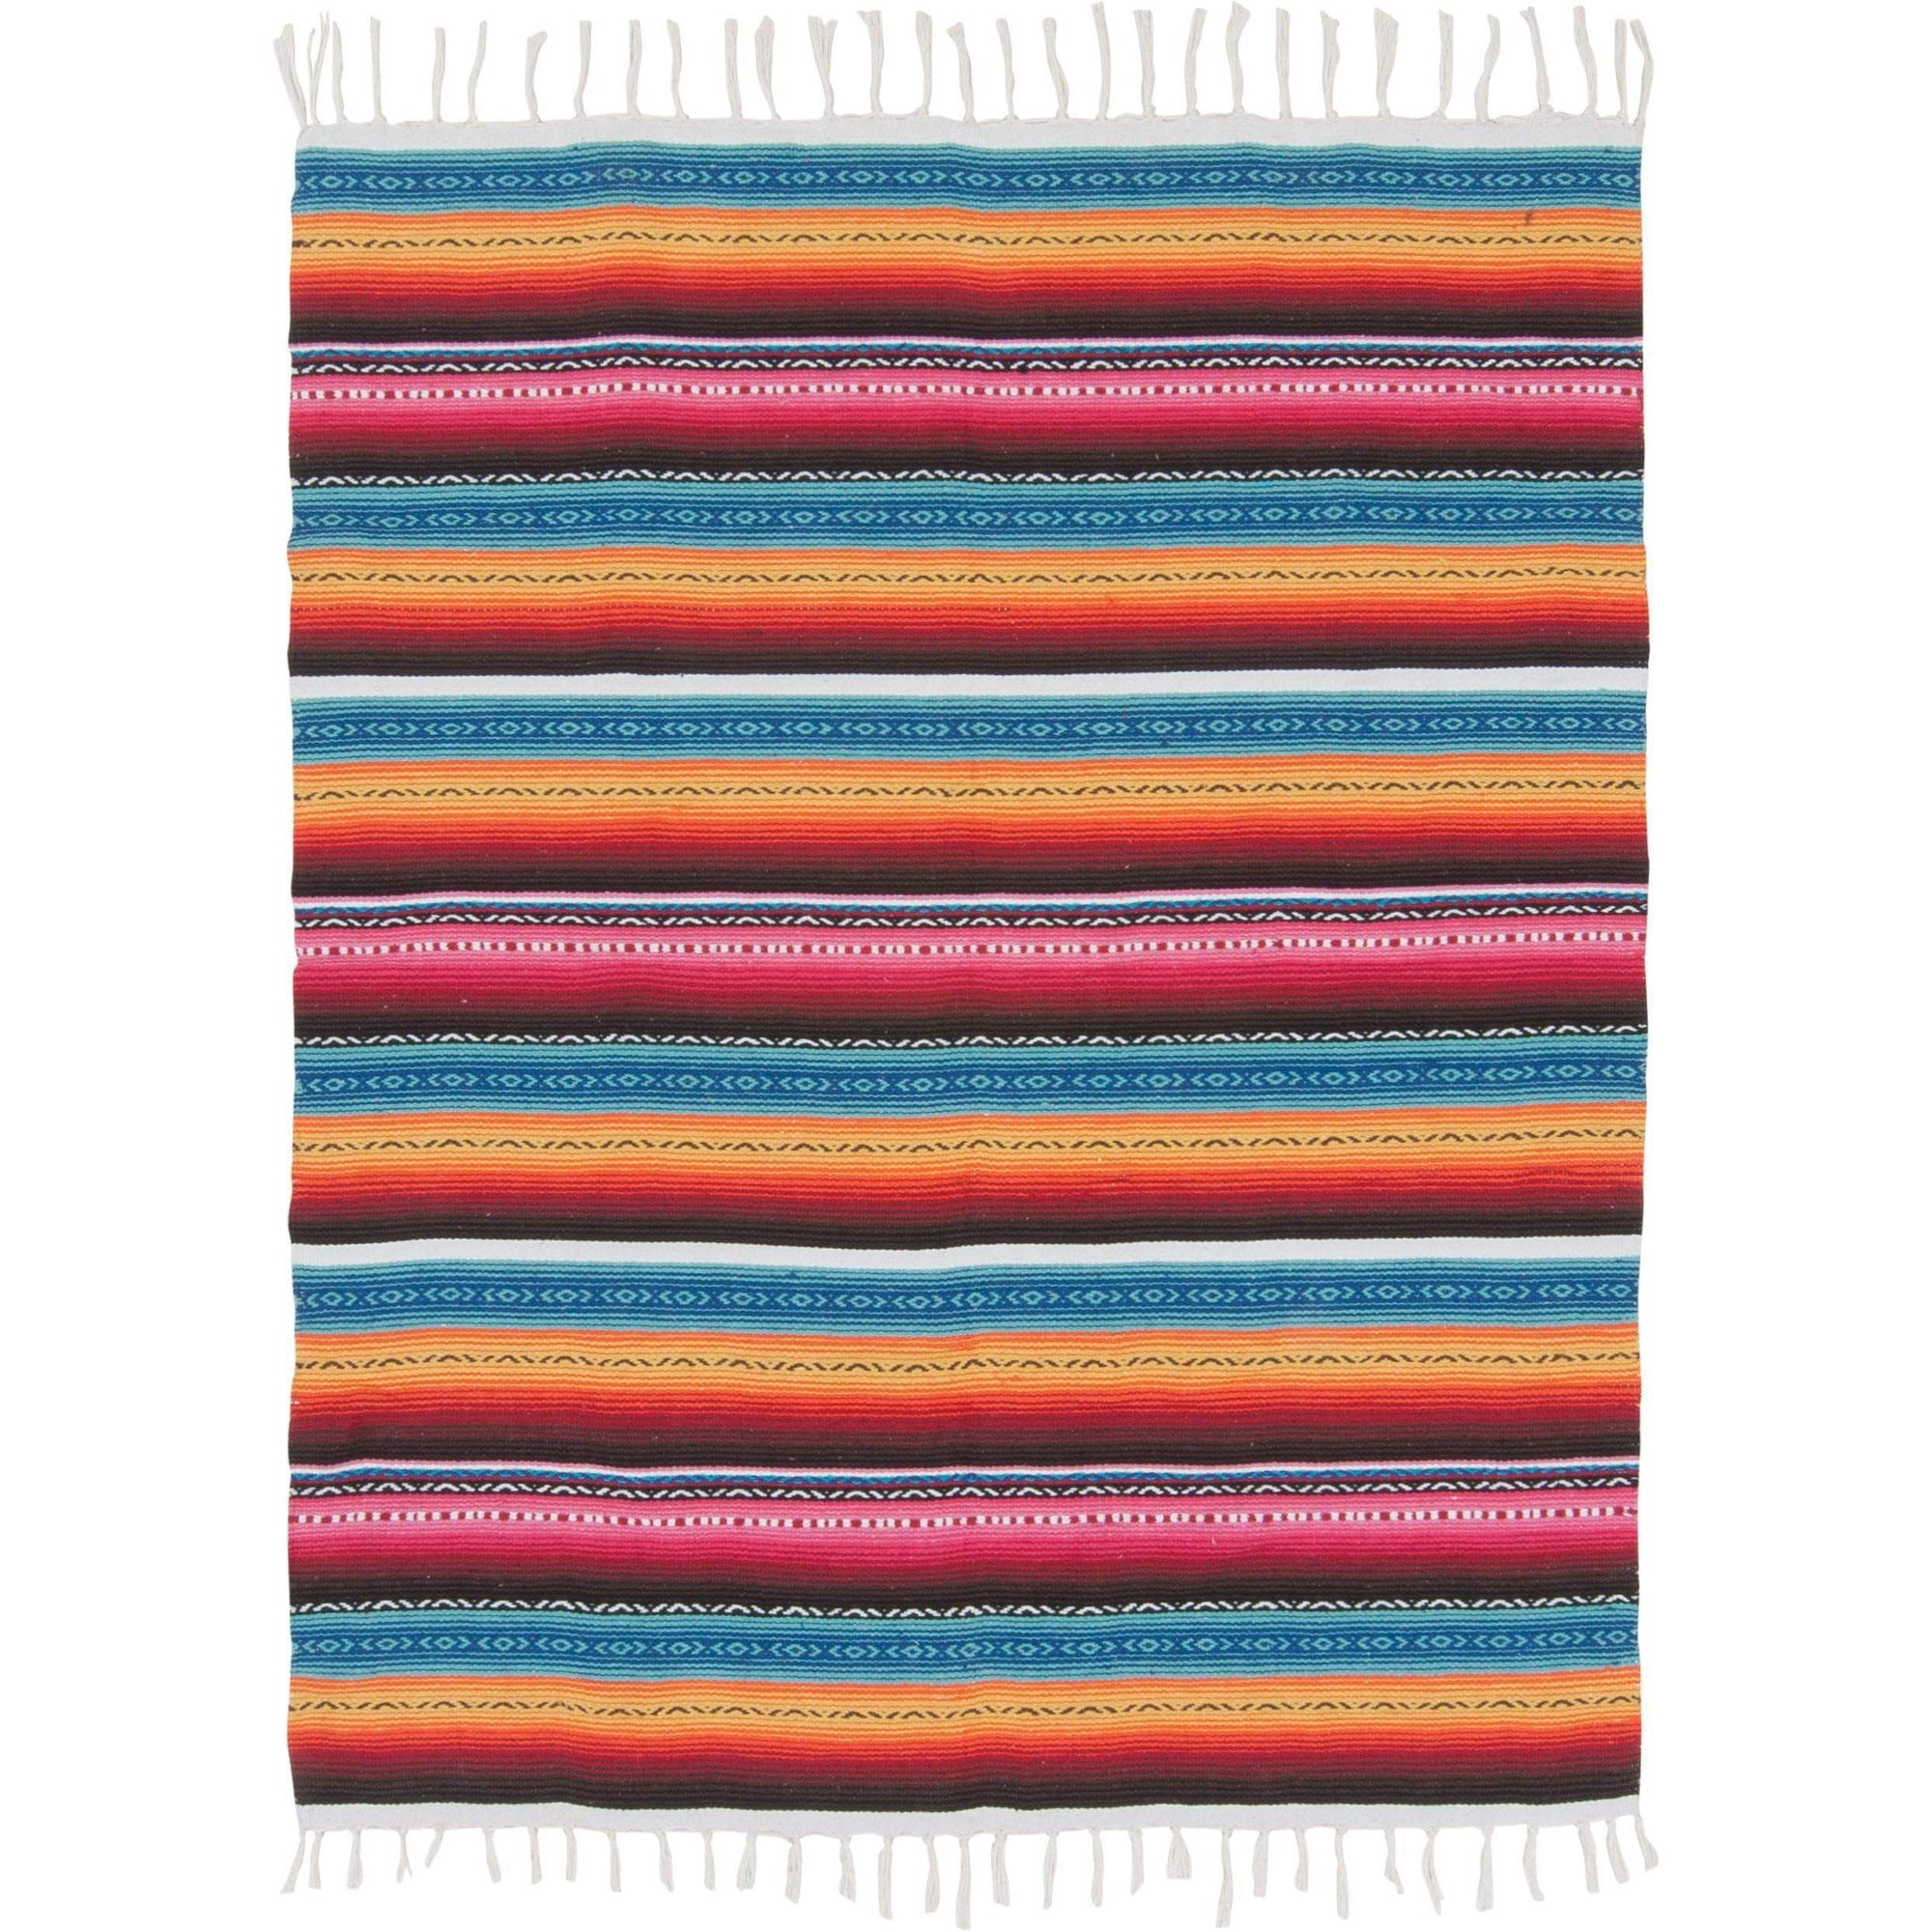 Ian Snow Ltd Multi Pink Handwoven Soft Cotton Mexicano Throw